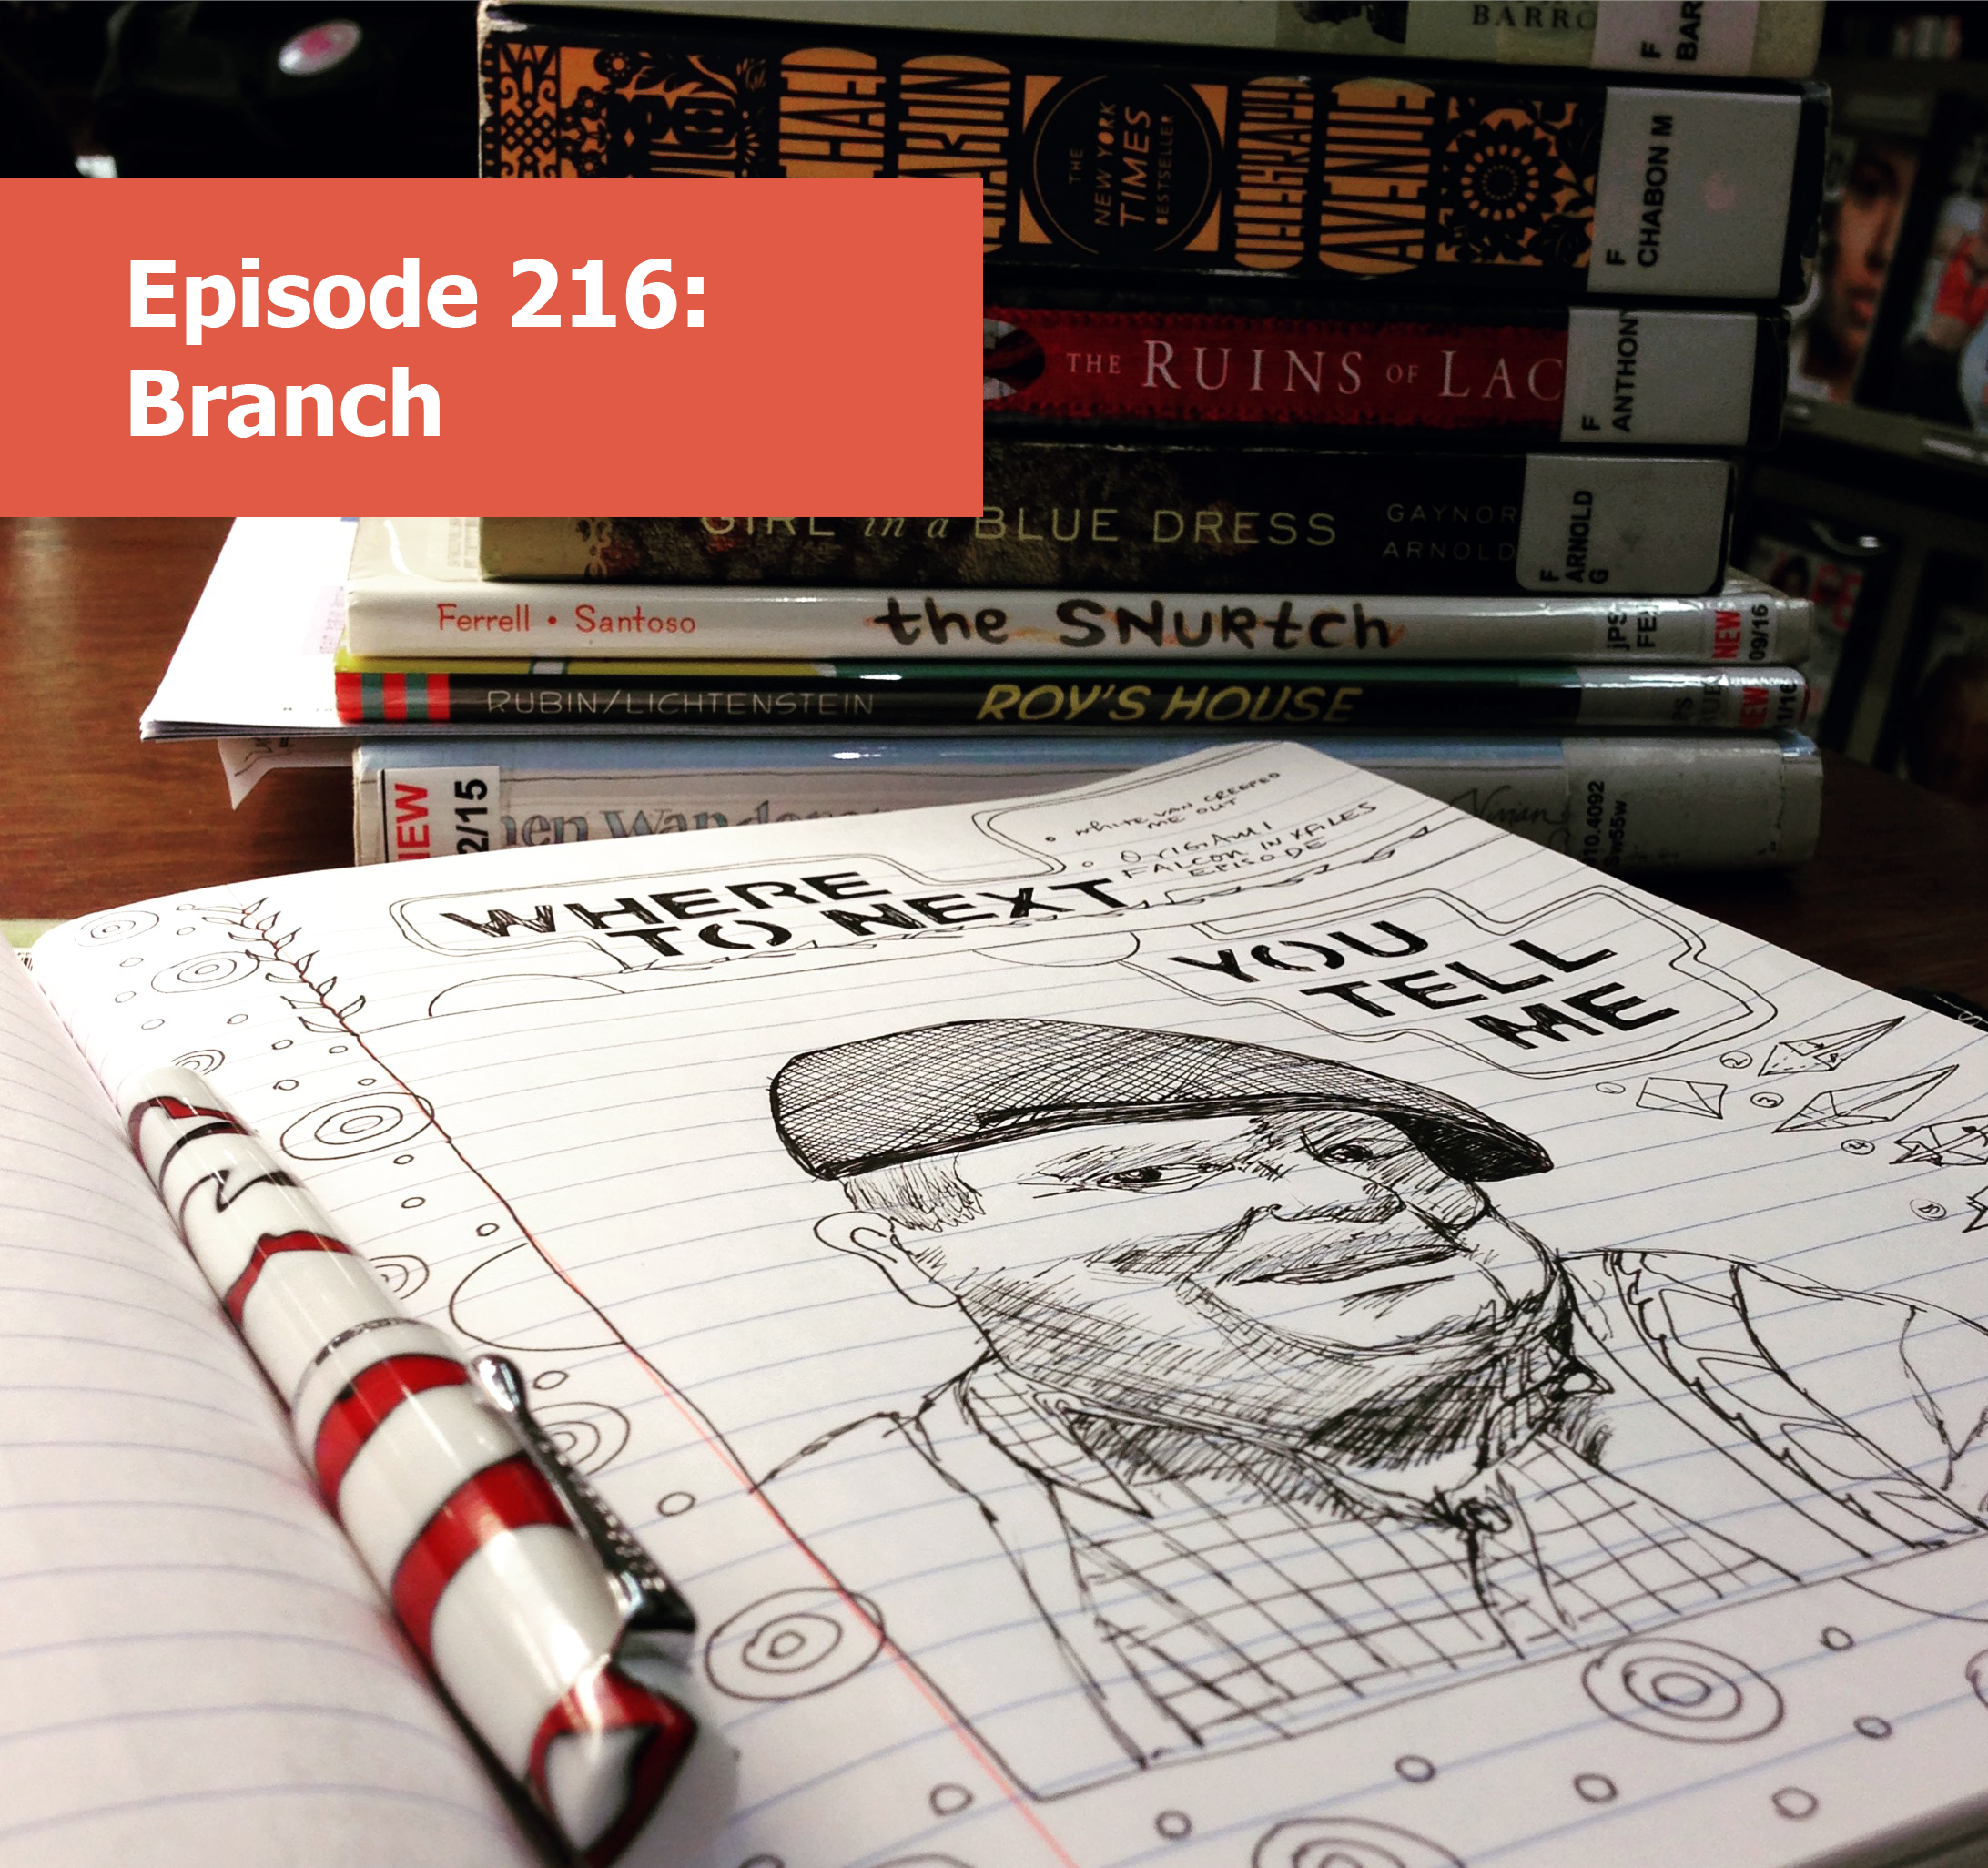 Episode 216: Branch